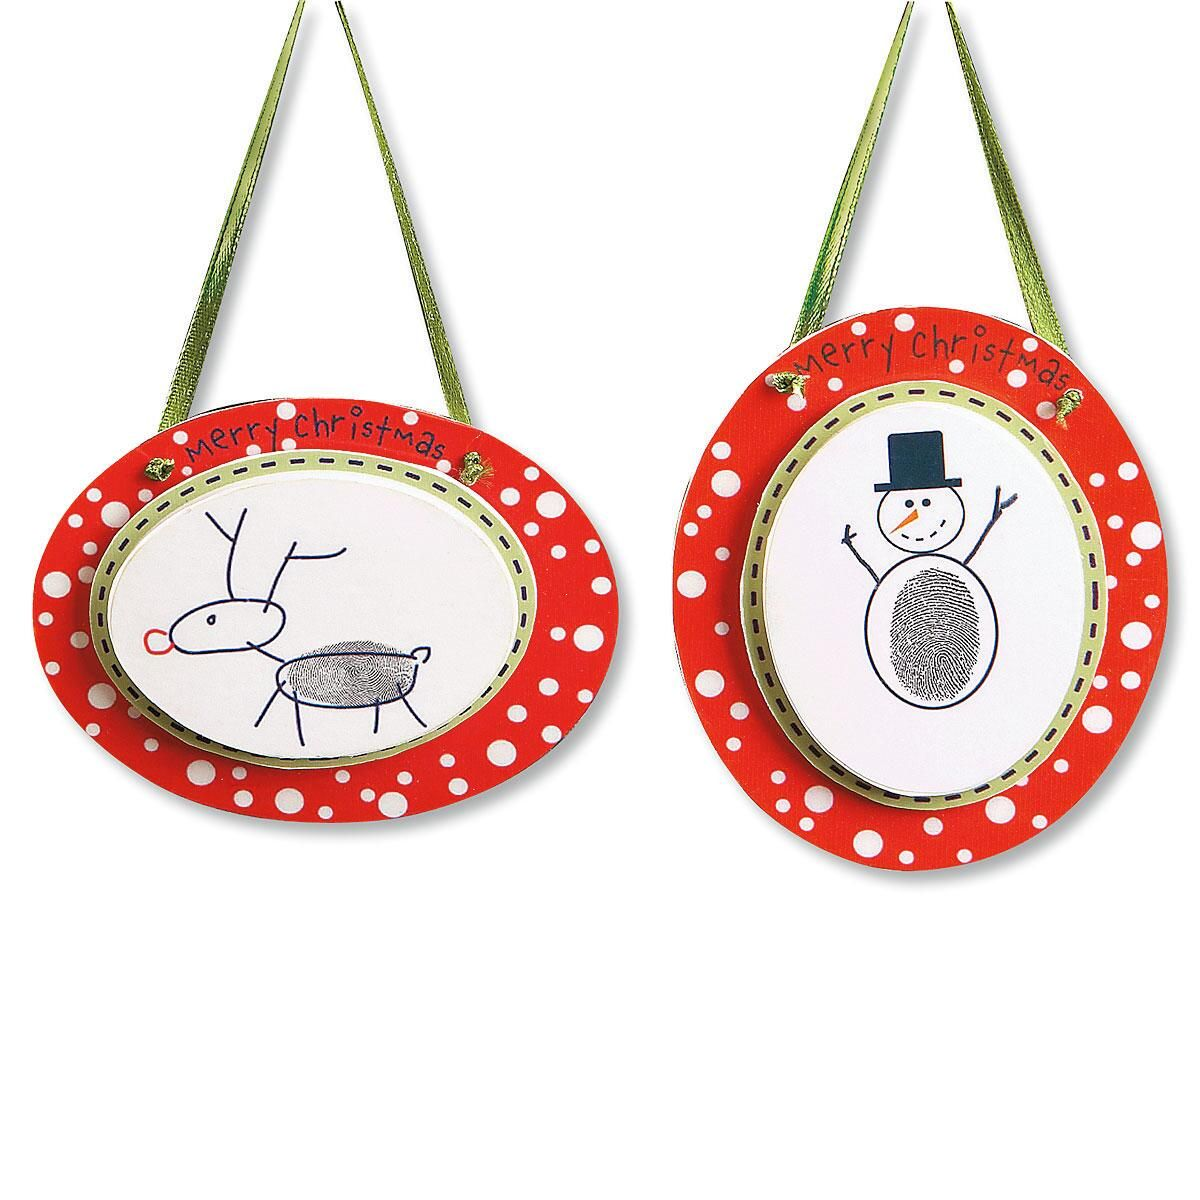 Thumbprint Ornament Craft Kit